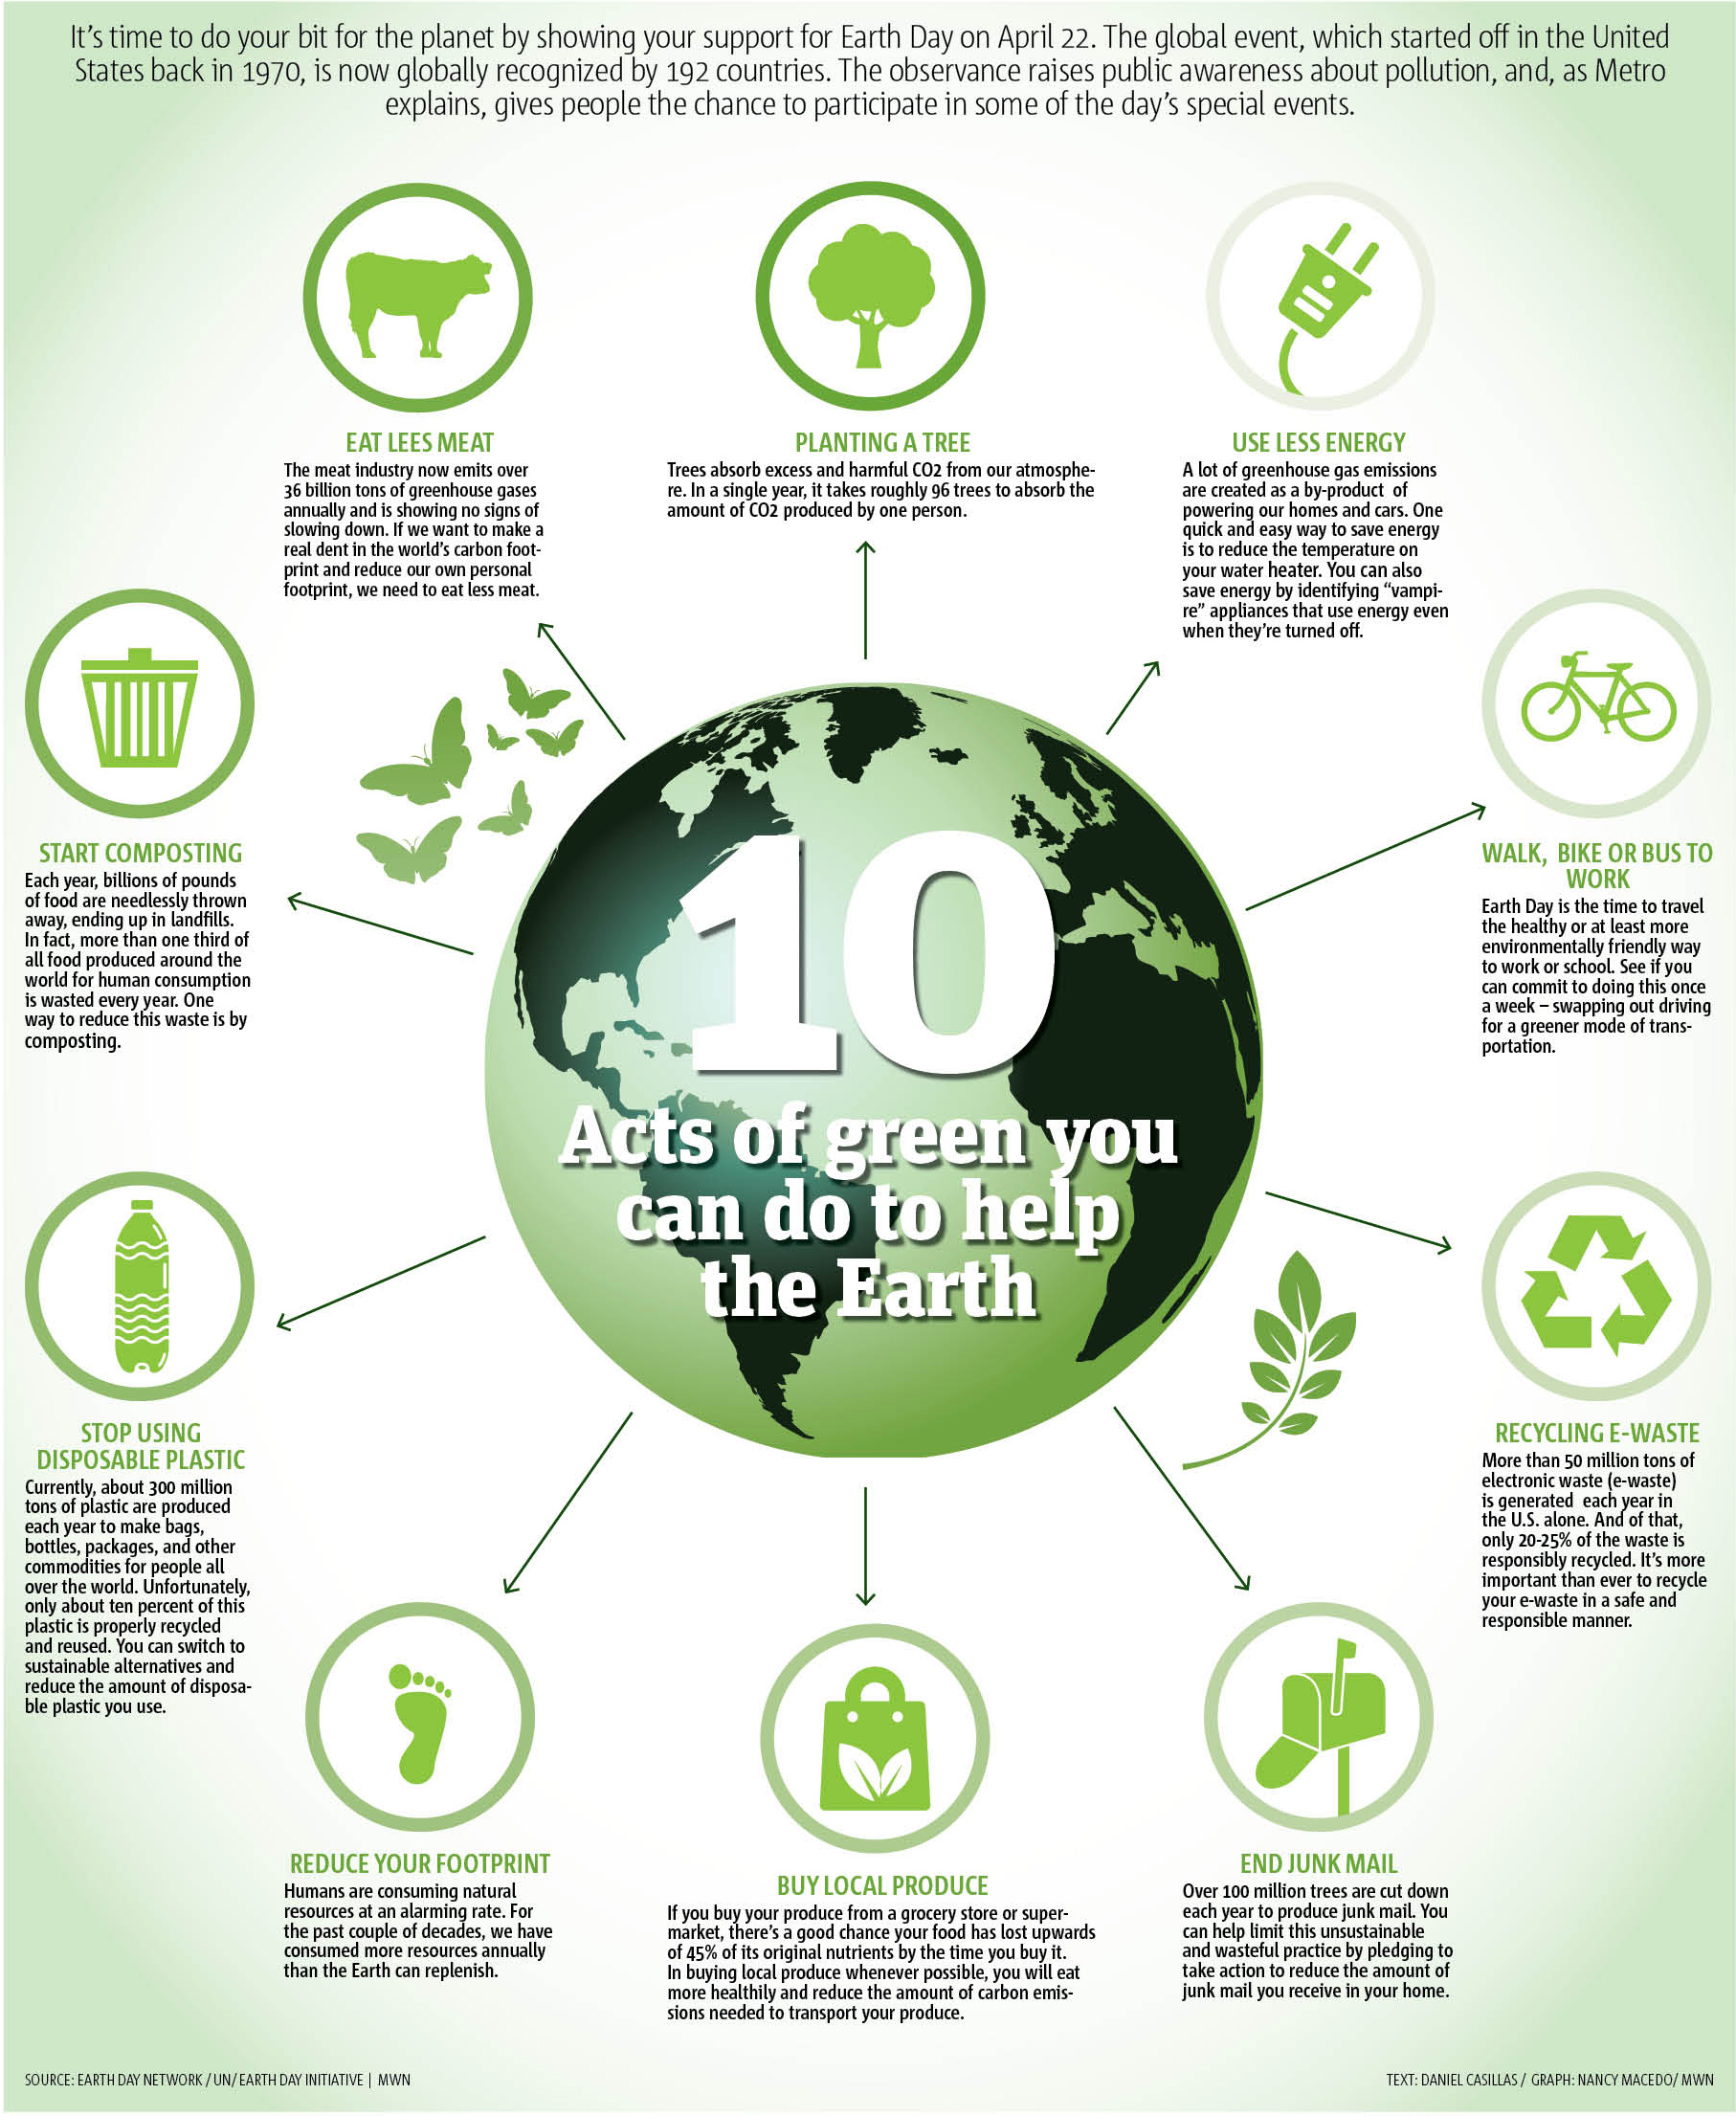 10 Acts Of Green You Can Do To Help The Earth